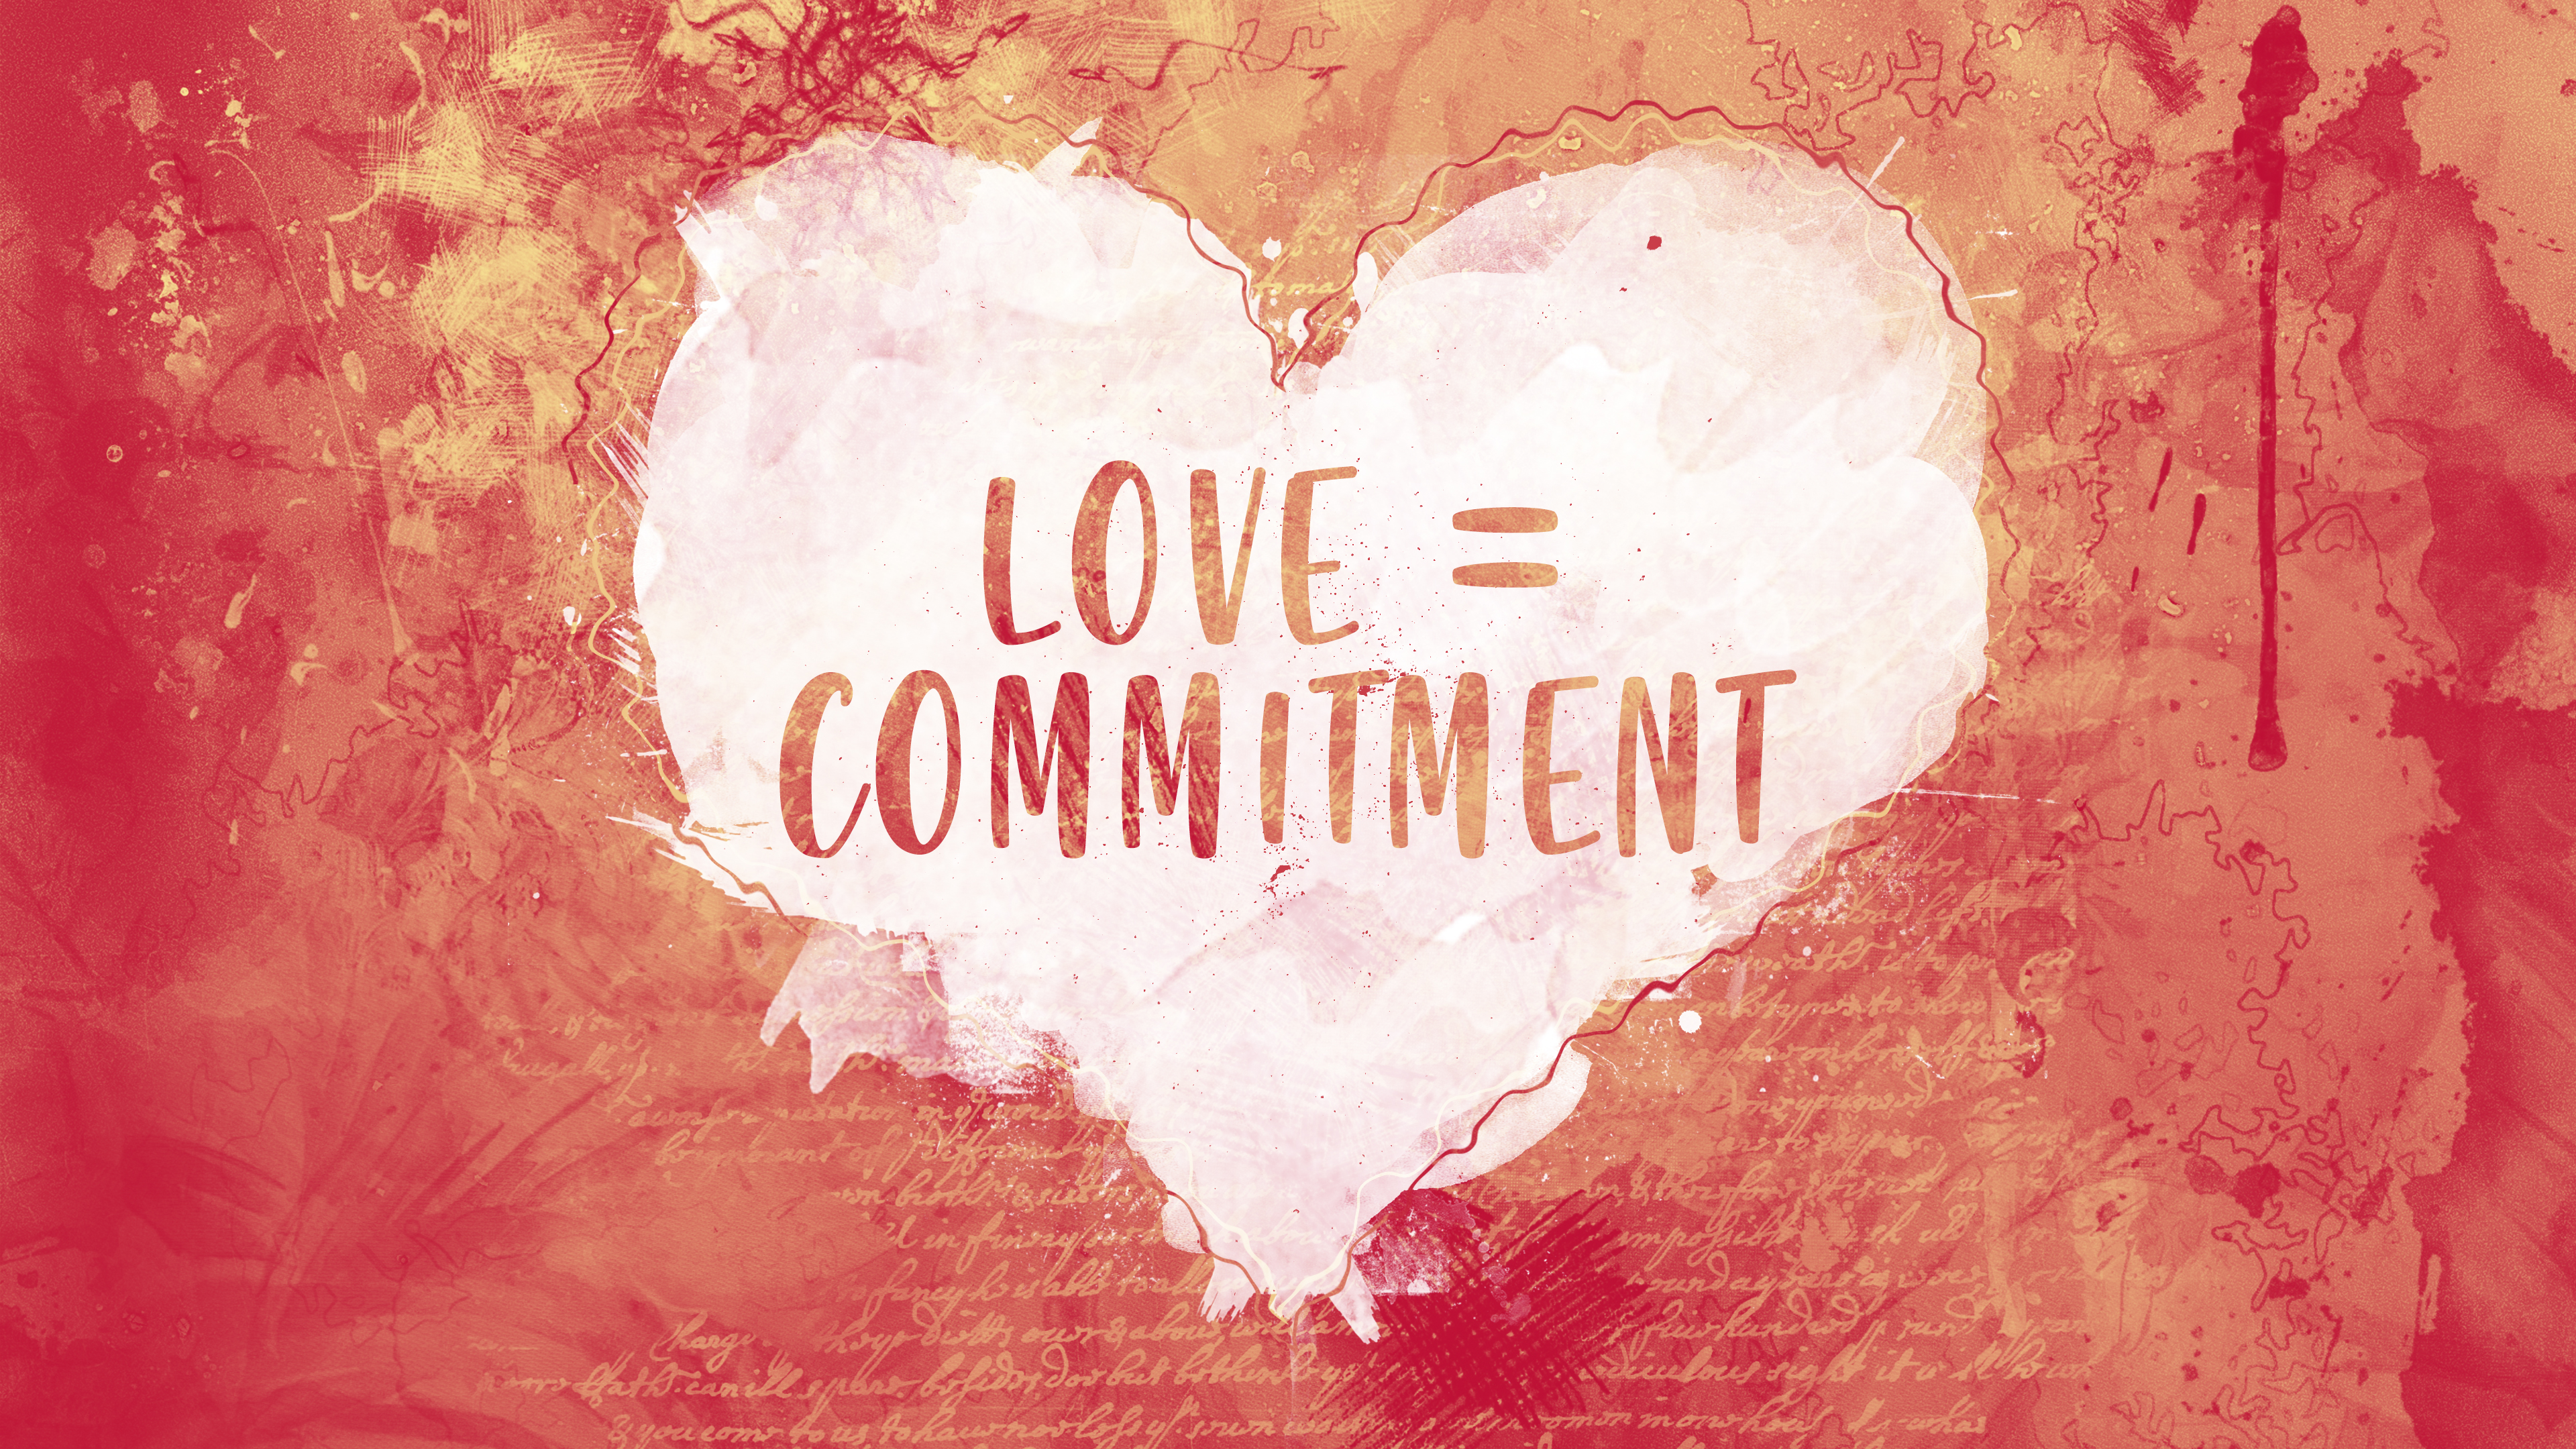 Love = Commitment